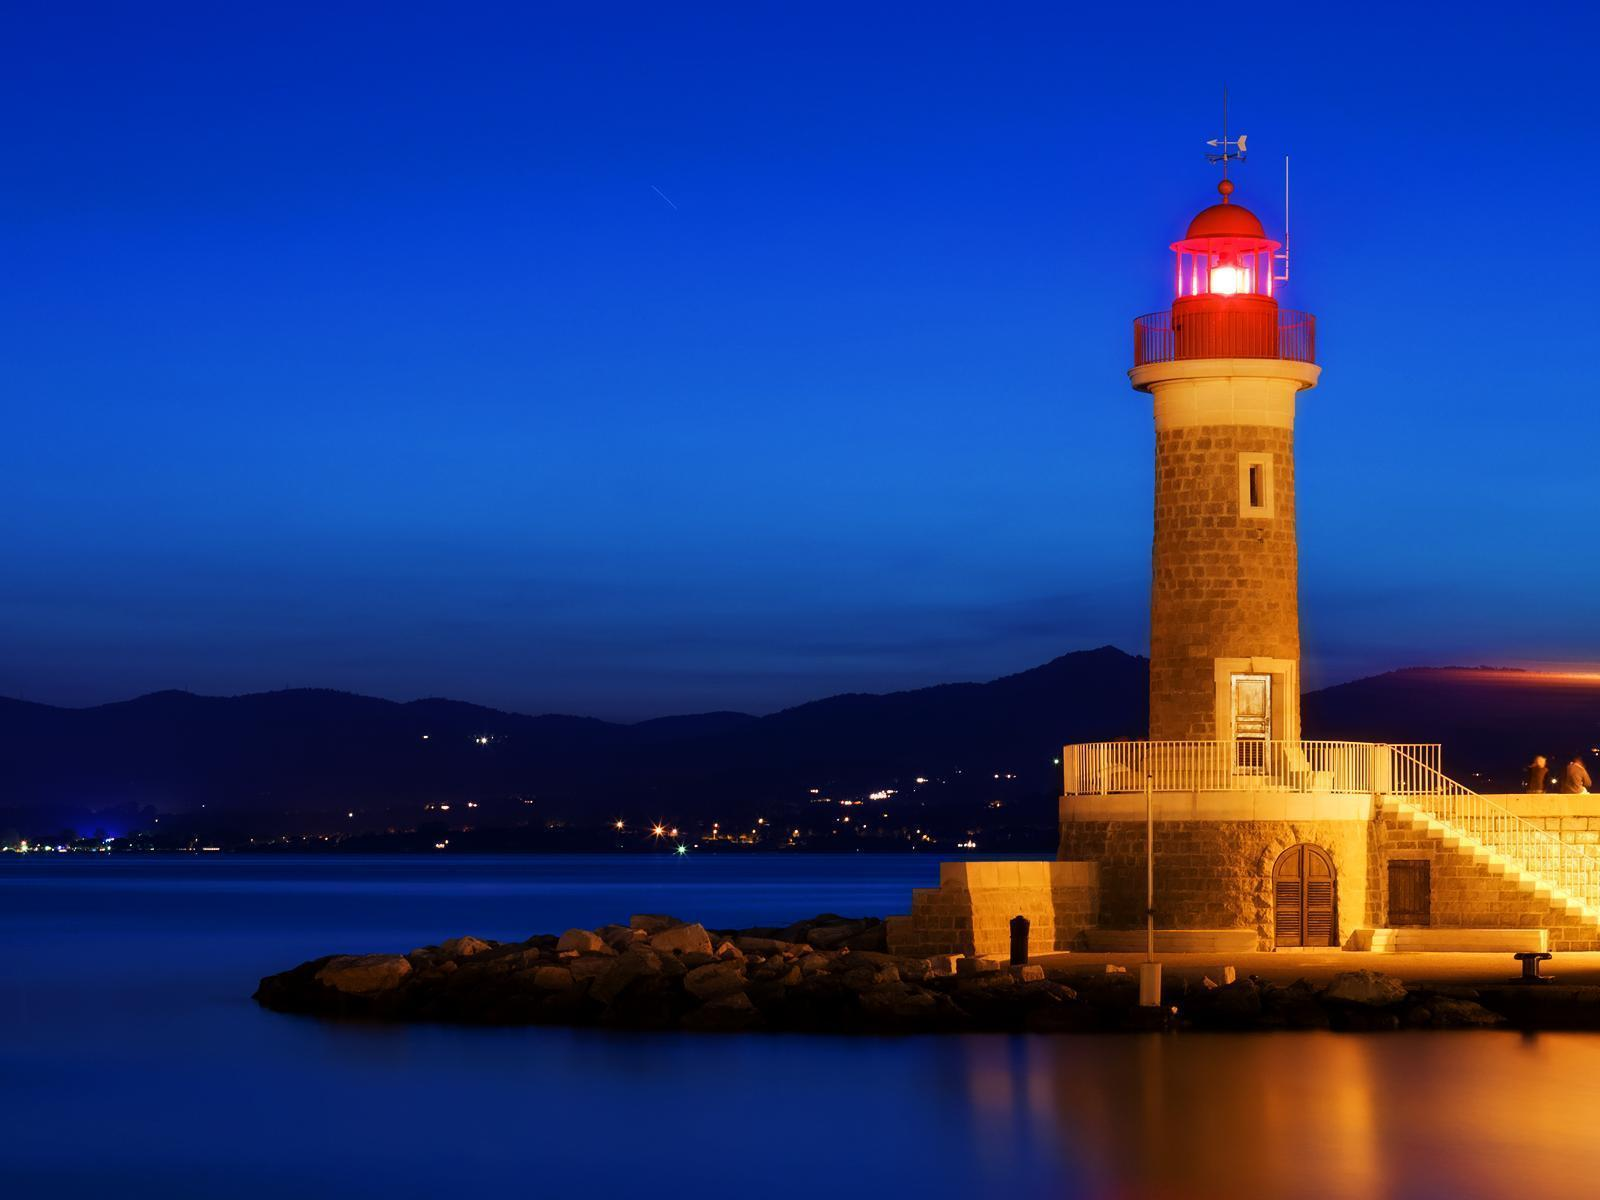 Red Cap Lighthouse wallpaper – Republicans Have Guiding Principles ...